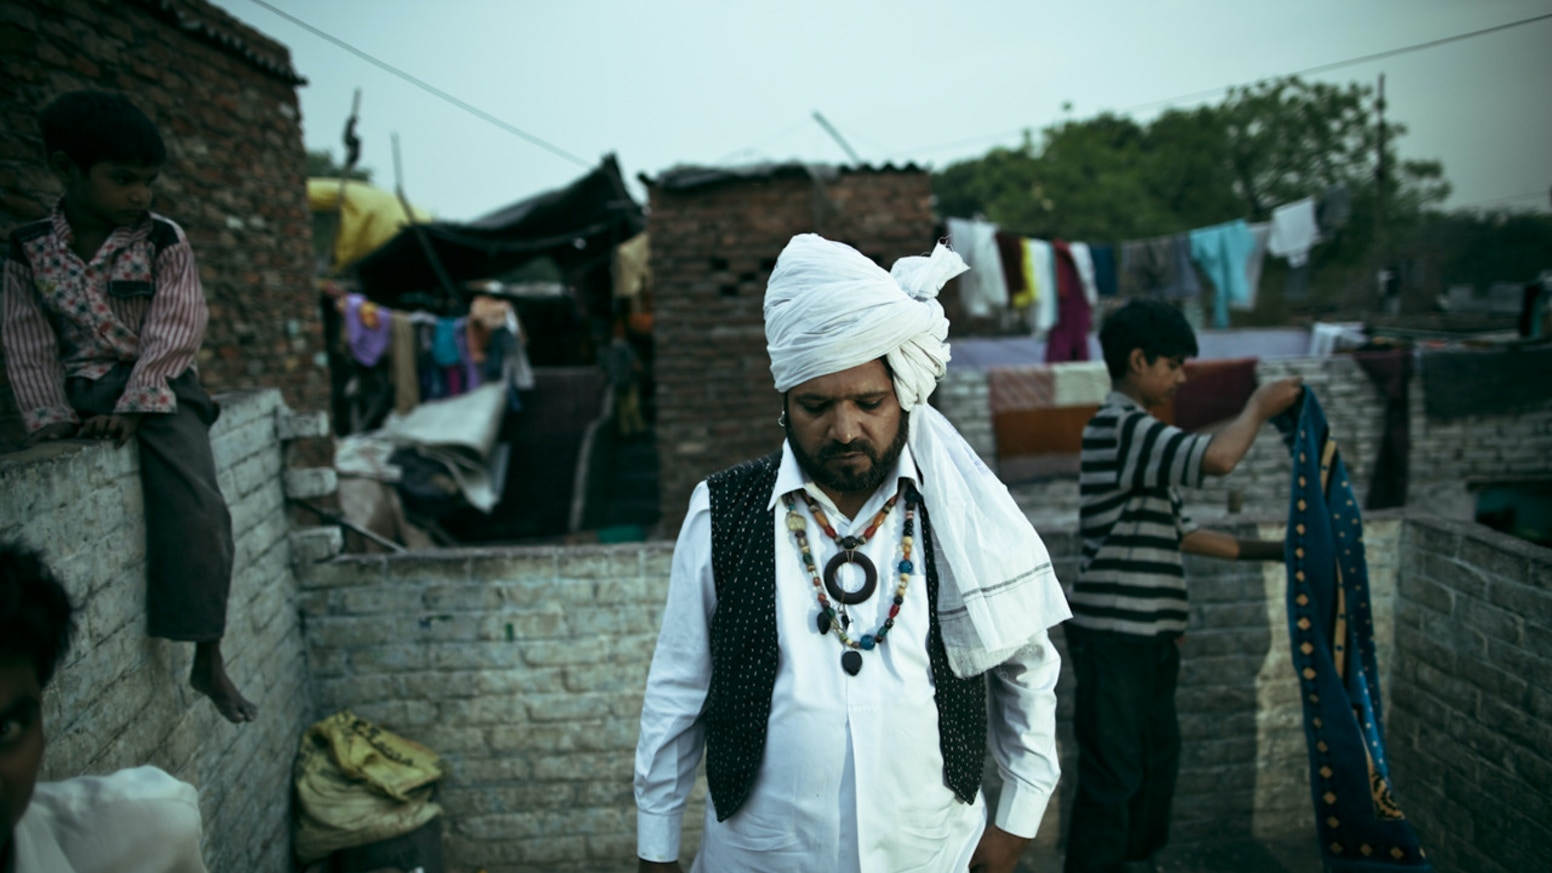 An award-winning feature documentary about Kathputli, India's last home to magicians, acrobats, and puppeteers.